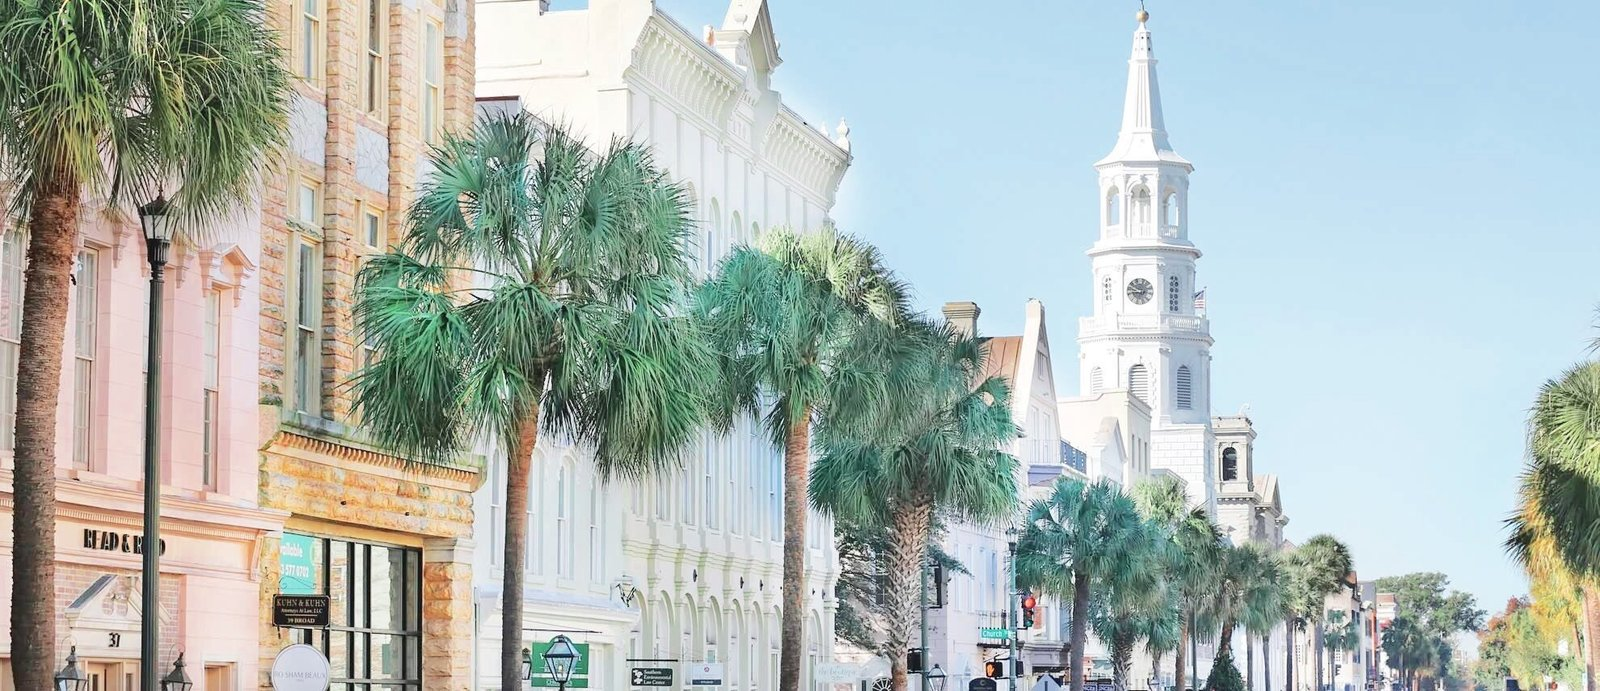 king street in charleston south carolina by Costola Photography